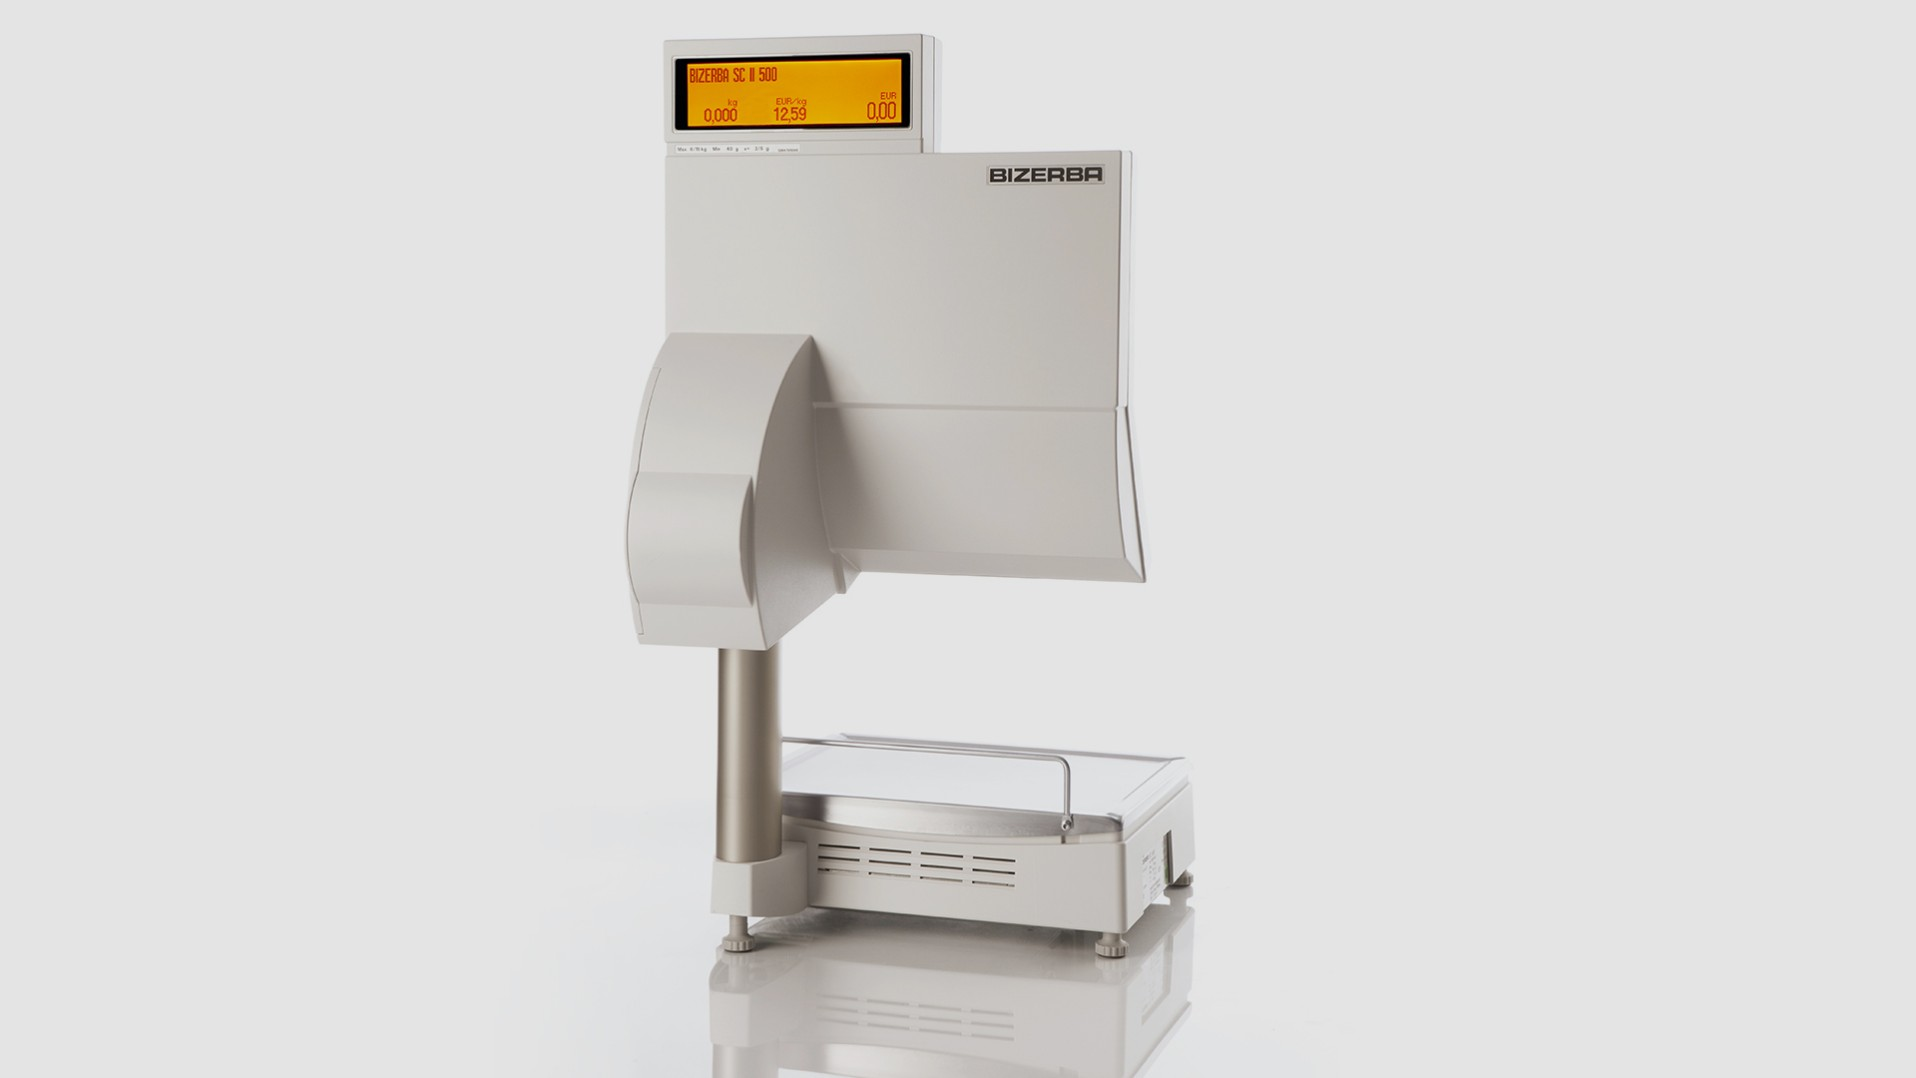 Self-service scale SC II 500 rear view